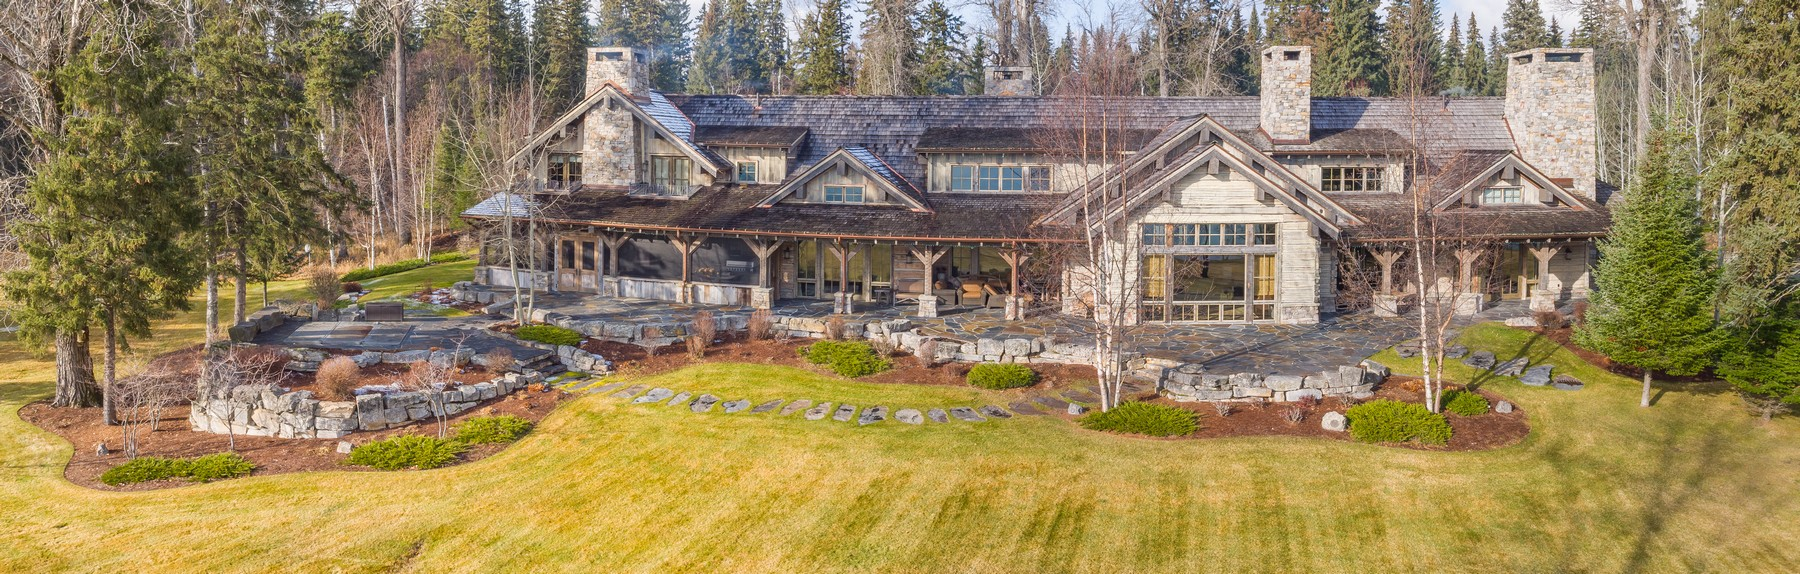 Single Family Home for Sale at 365 Delrey Rd , Whitefish, MT 59937 365 Delrey Rd Whitefish, Montana 59937 United States